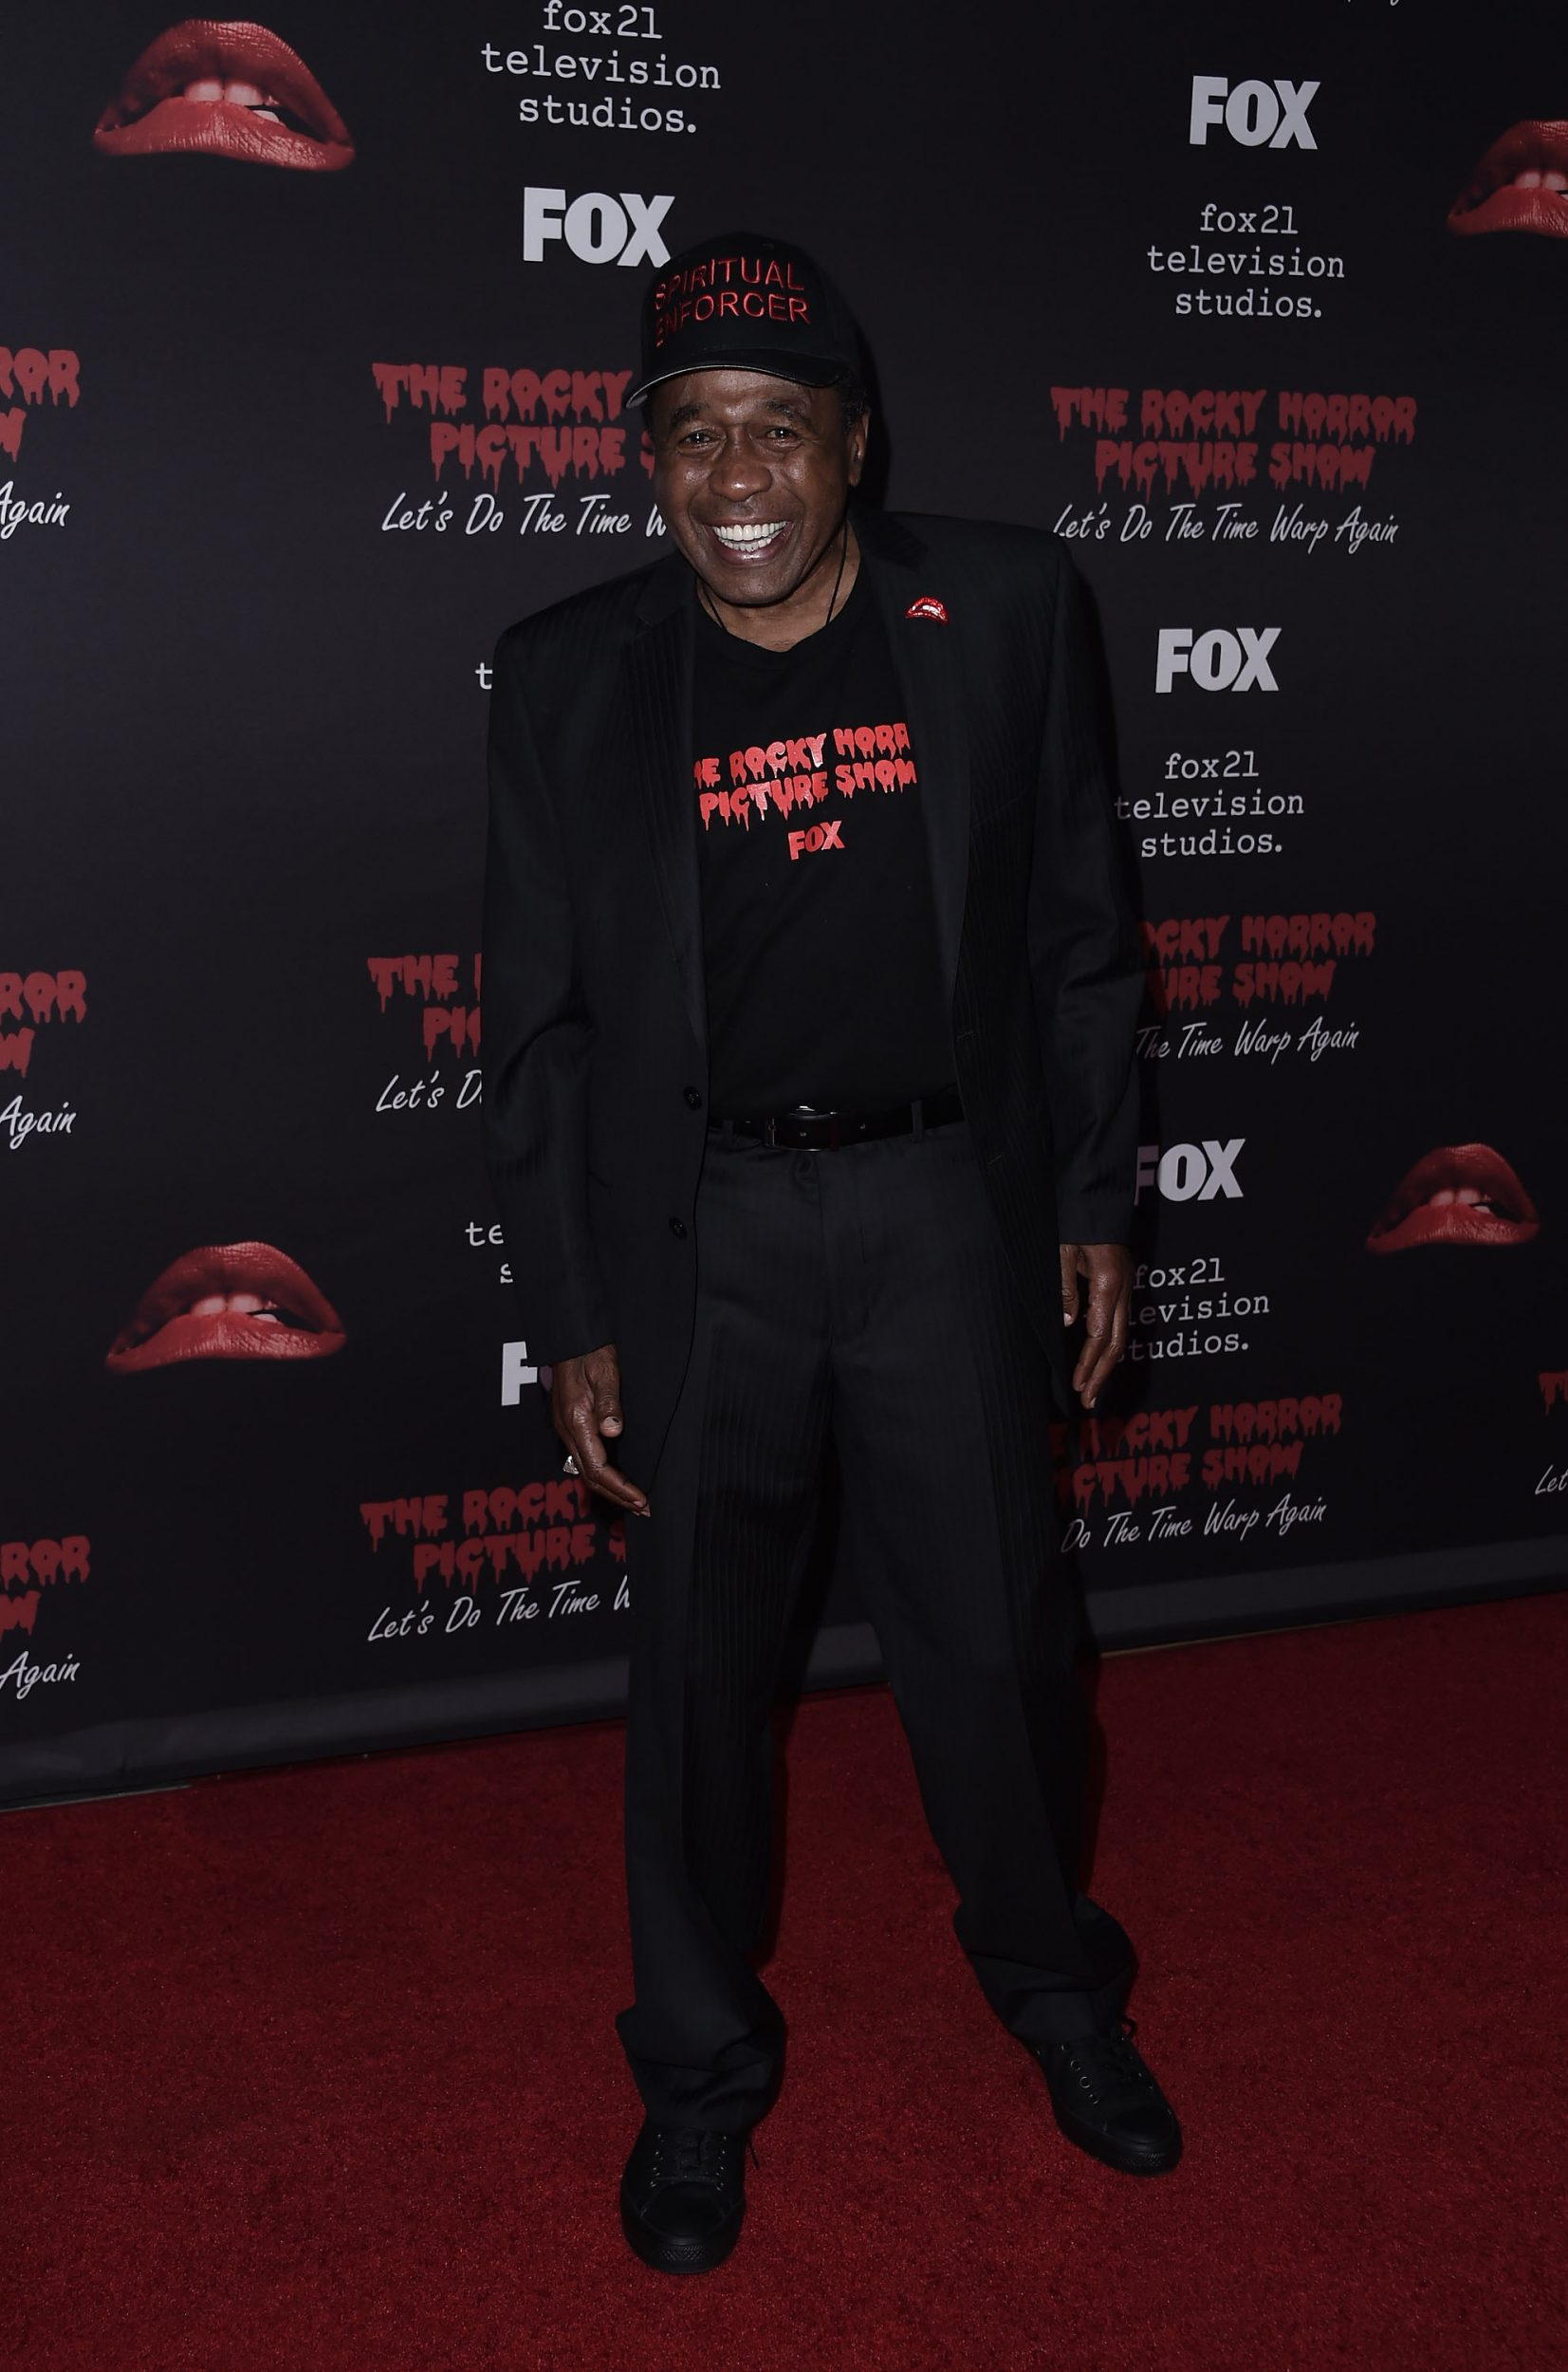 THE ROCKY HORROR PICTURE SHOW: Let's Do The Time Warp Again (and Transylvanians!): Cast member Ben Vereen arrives at THE ROCKY HORROR PICTURE SHOW: Let's Do The Time Warp Again (and Transylvanians!) premiere party red carpet at The Roxy on Thursday, Oct. 13, in Los Angeles, CA. THE ROCKY HORROR PICTURE SHOW: Let's Do The Time Warp Again (And Transylvanians!) premieres Thursday, Oct. 20 (8:00-10:00 PM ET/PT) on FOX. © 2016 FOX BROADCASTING CR: Scott Kirkland/FOX